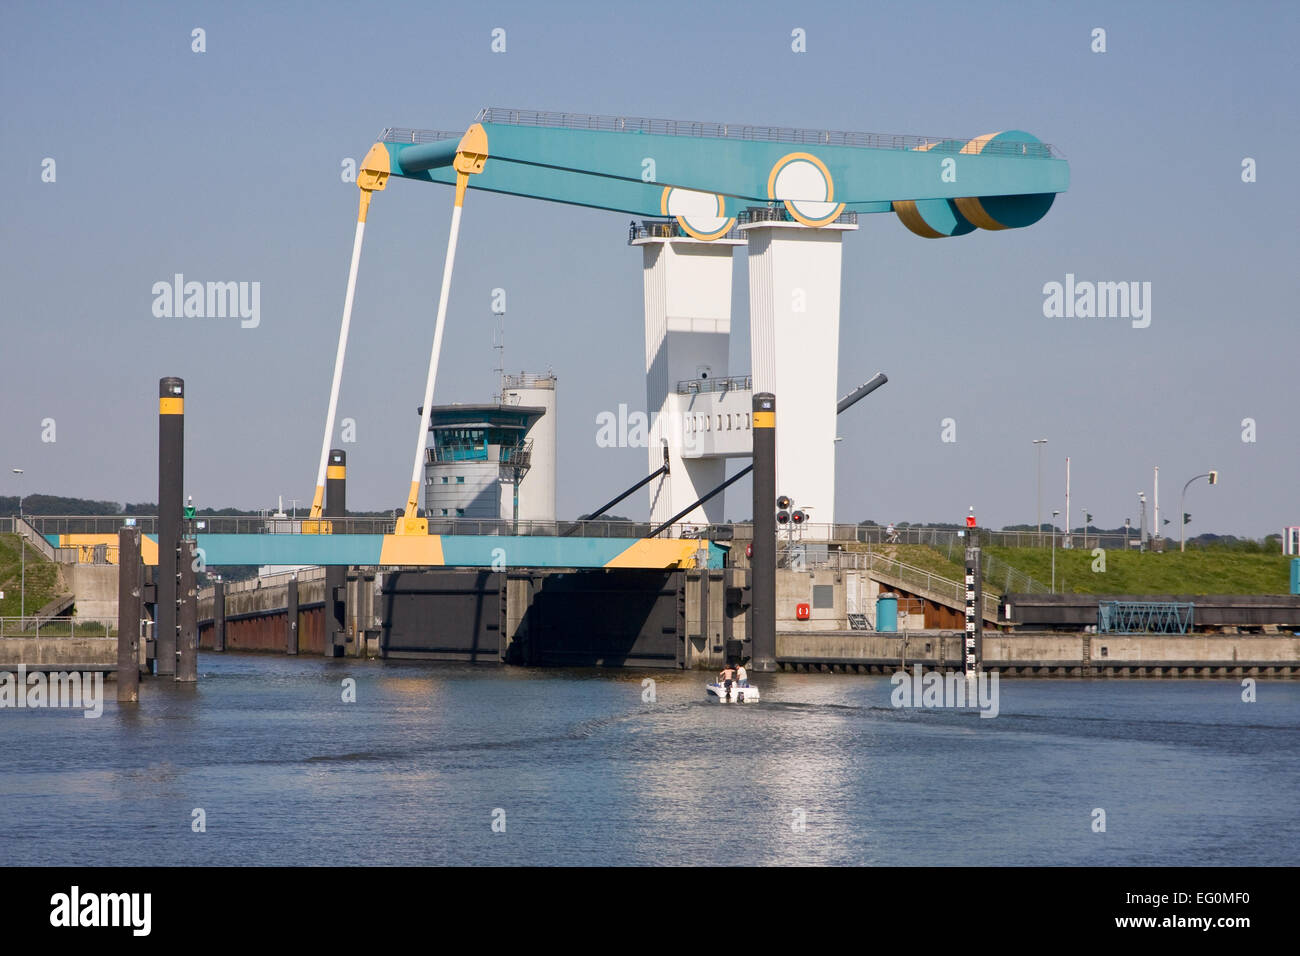 Bascule bridge in Estesperrwerk at the Este, Cranz, Altes Land, Hamburg, Lower Saxony, Germany, Europe - Stock Image